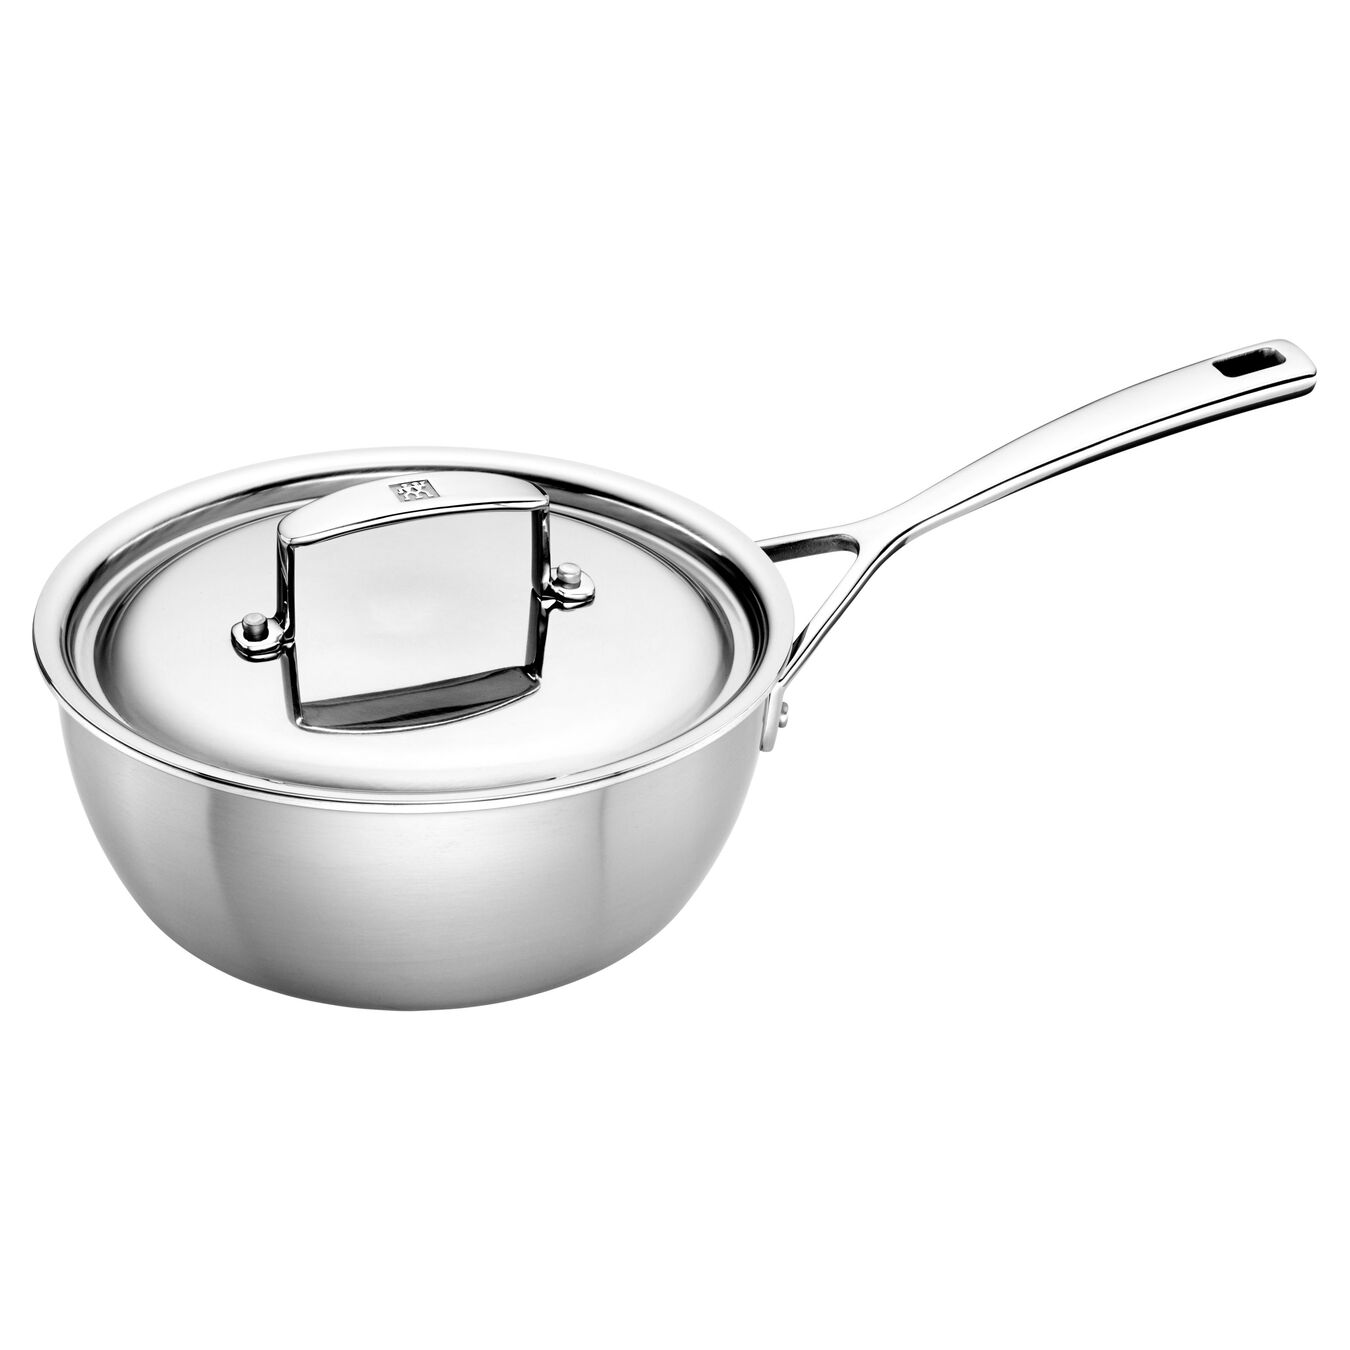 Stainless Steel 2-Qt. Saucier,,large 2